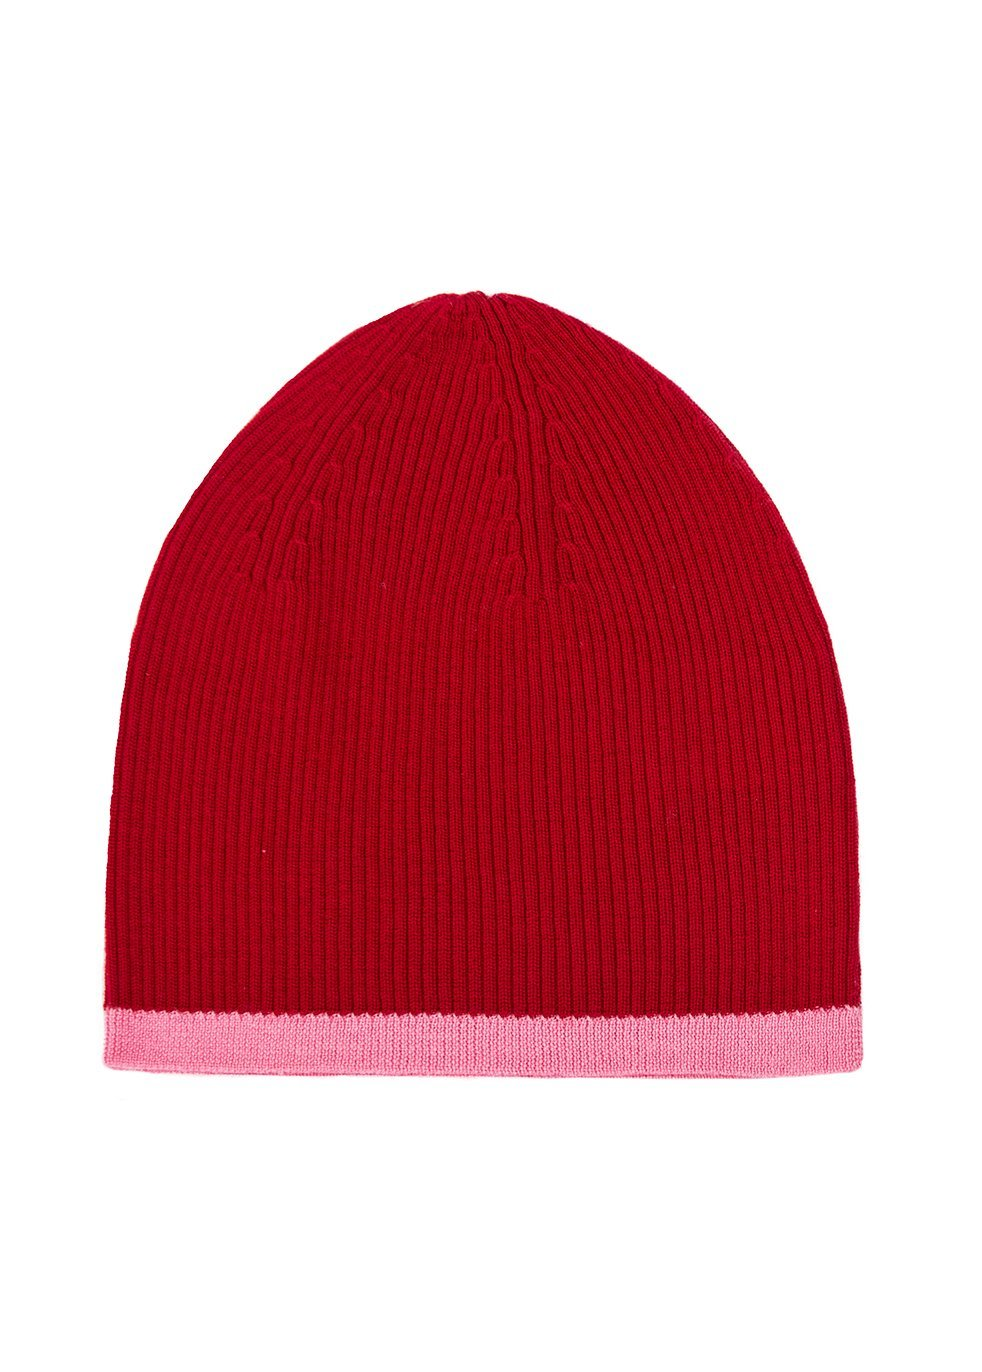 Merino Beanie Hat Cherry & Flamingo in Red